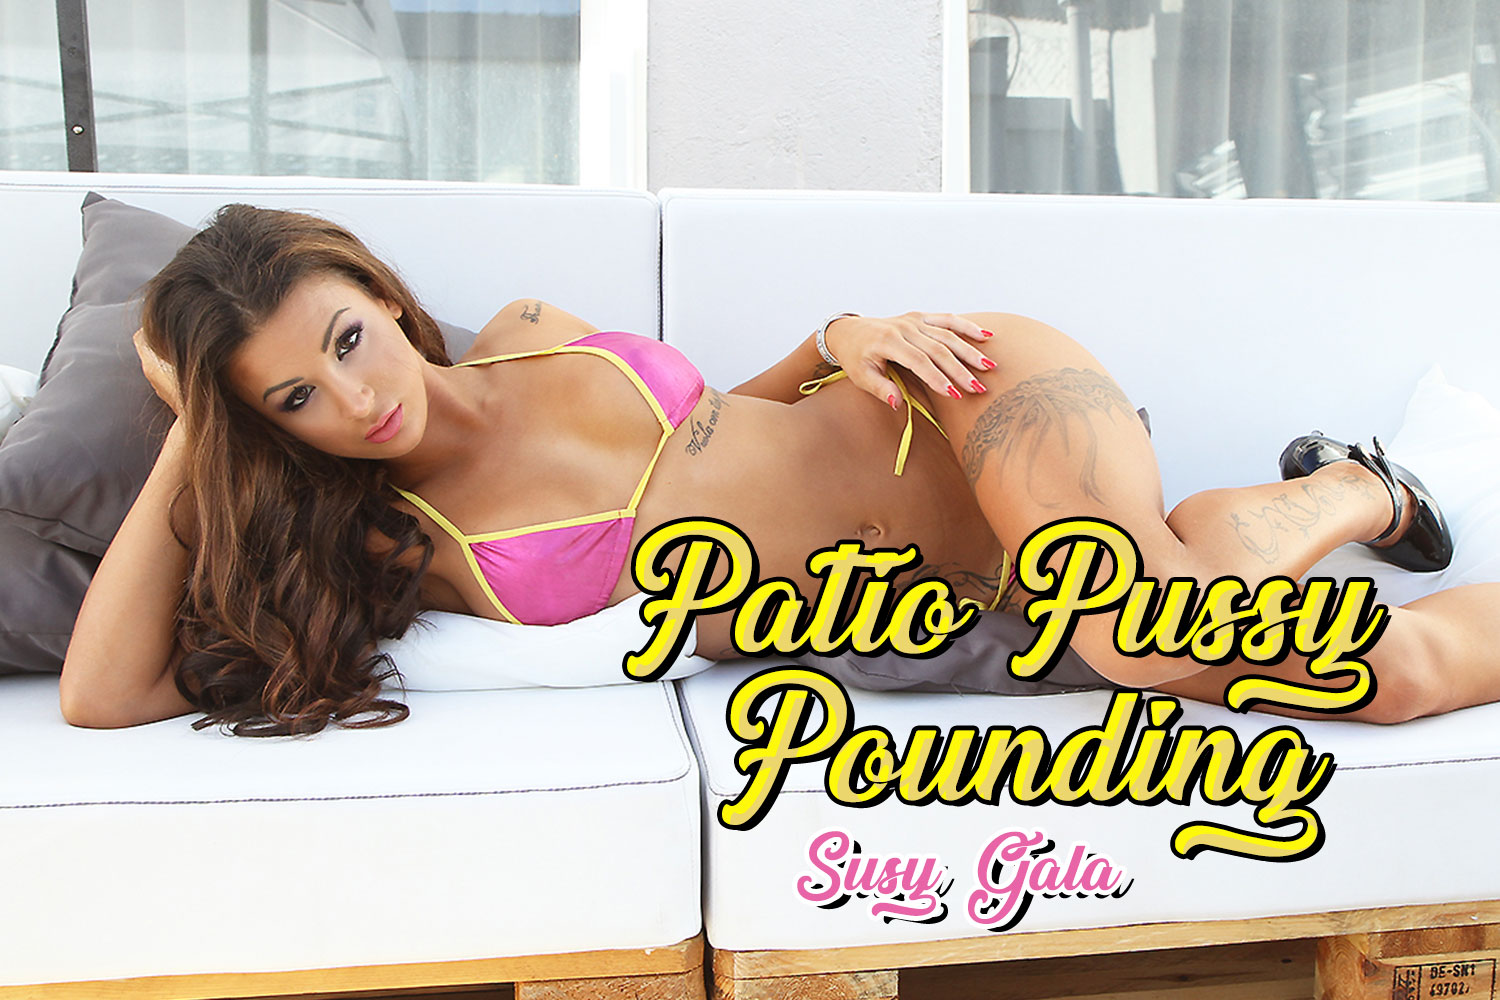 Patio Pussy Pounding VR Porn Video